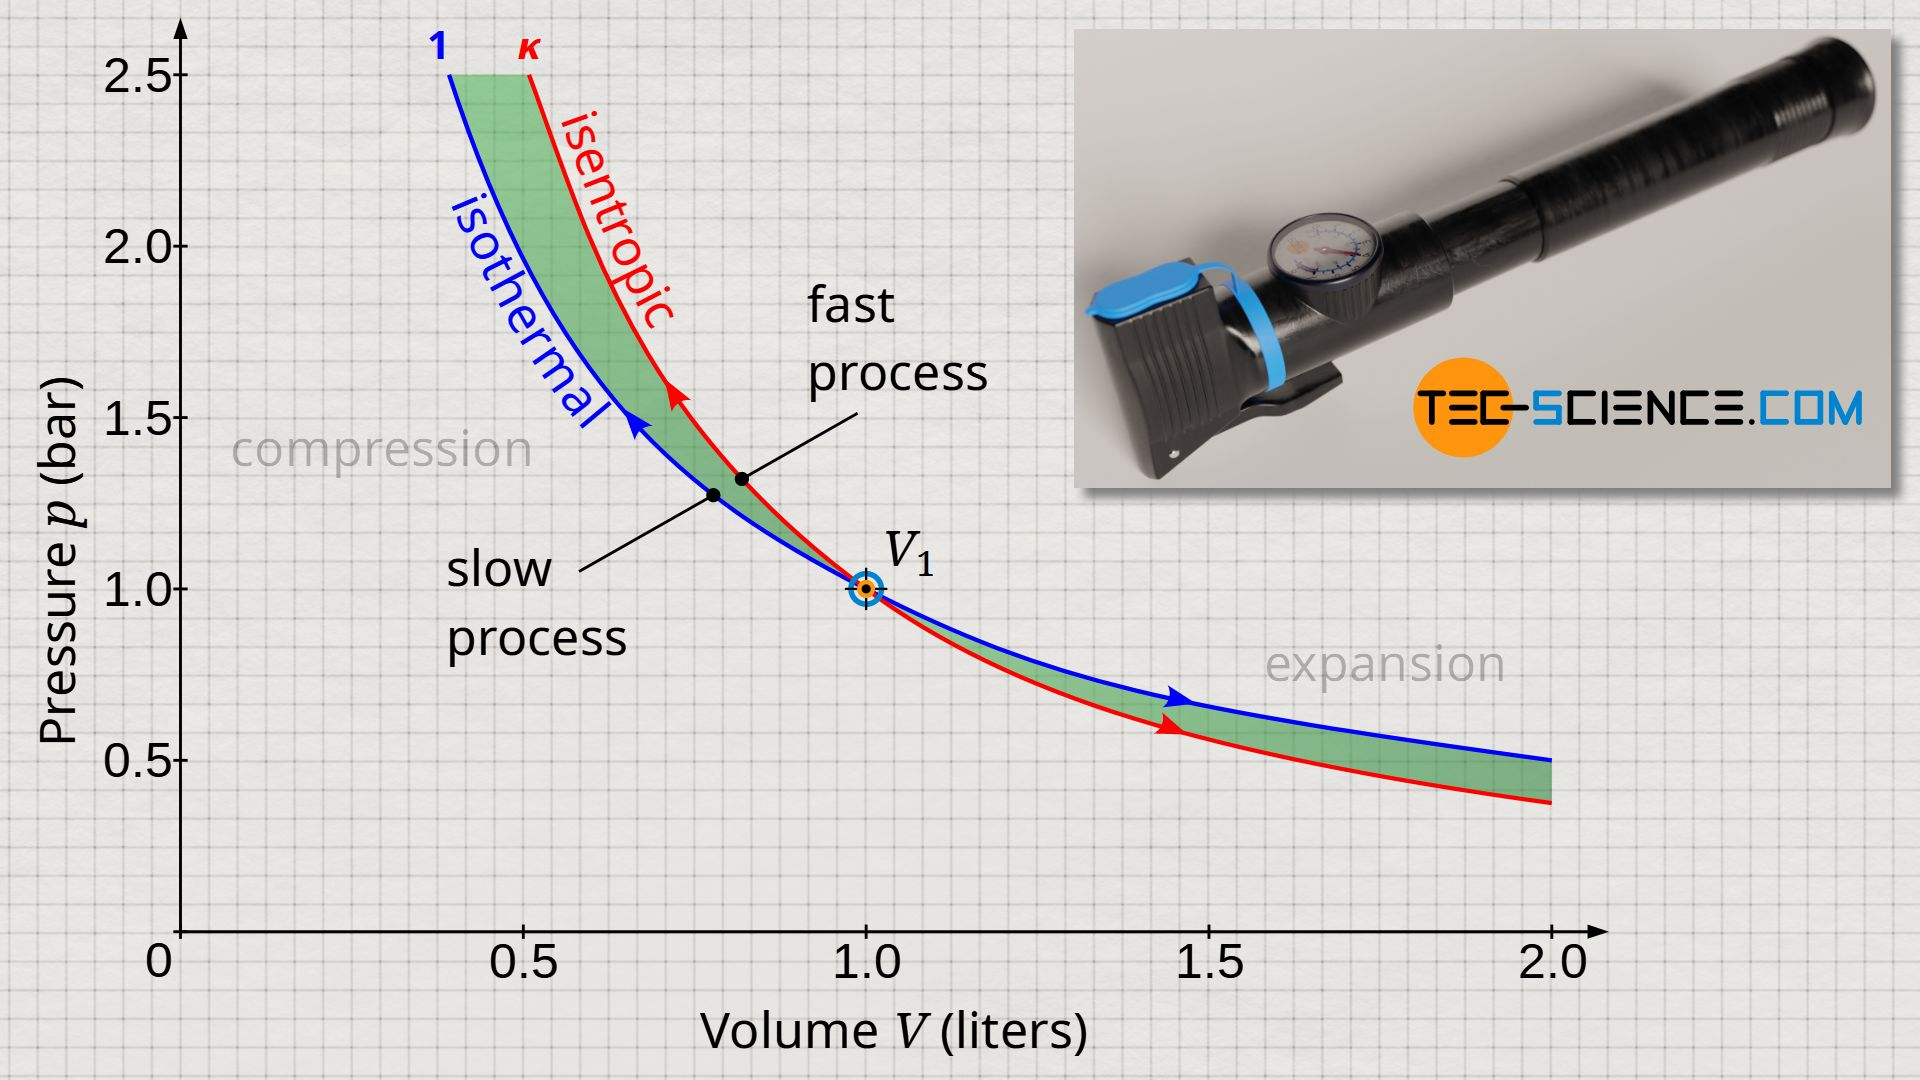 Comparison between an isothermal and an isentropic process